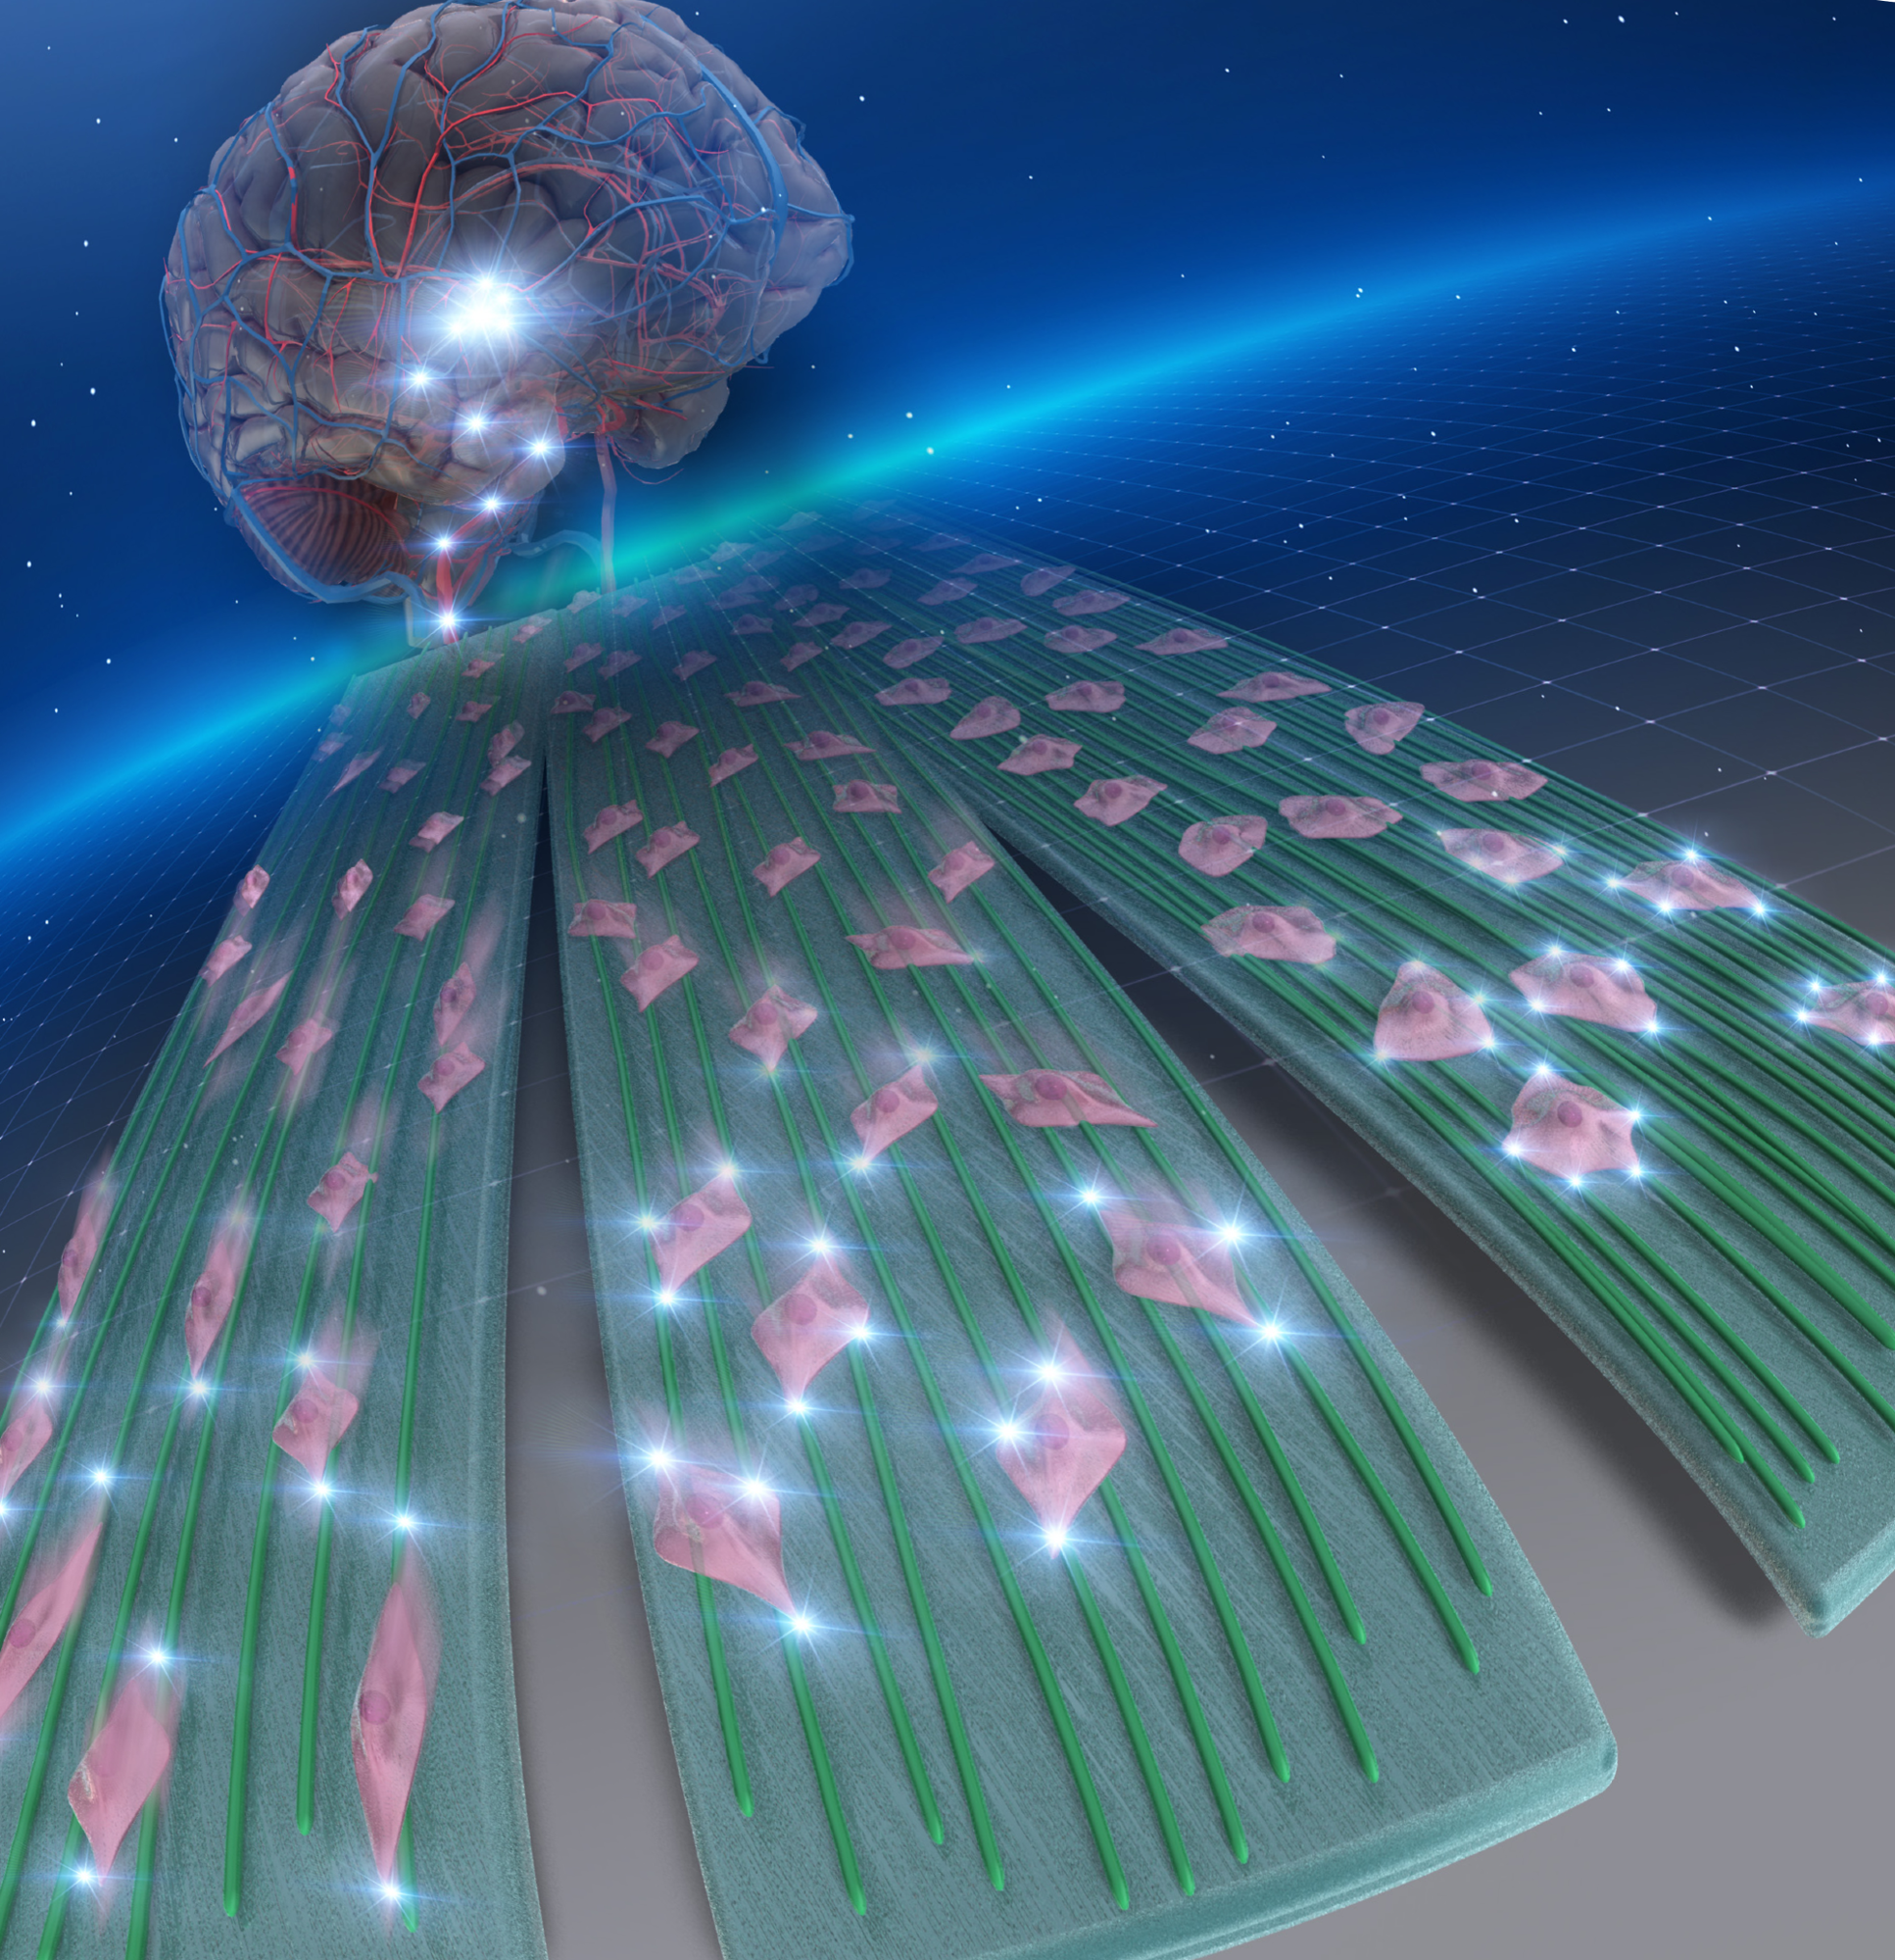 High-Density Nanofibers Set the Stage for Novel Therapeutic Solutions for Brain Cancer